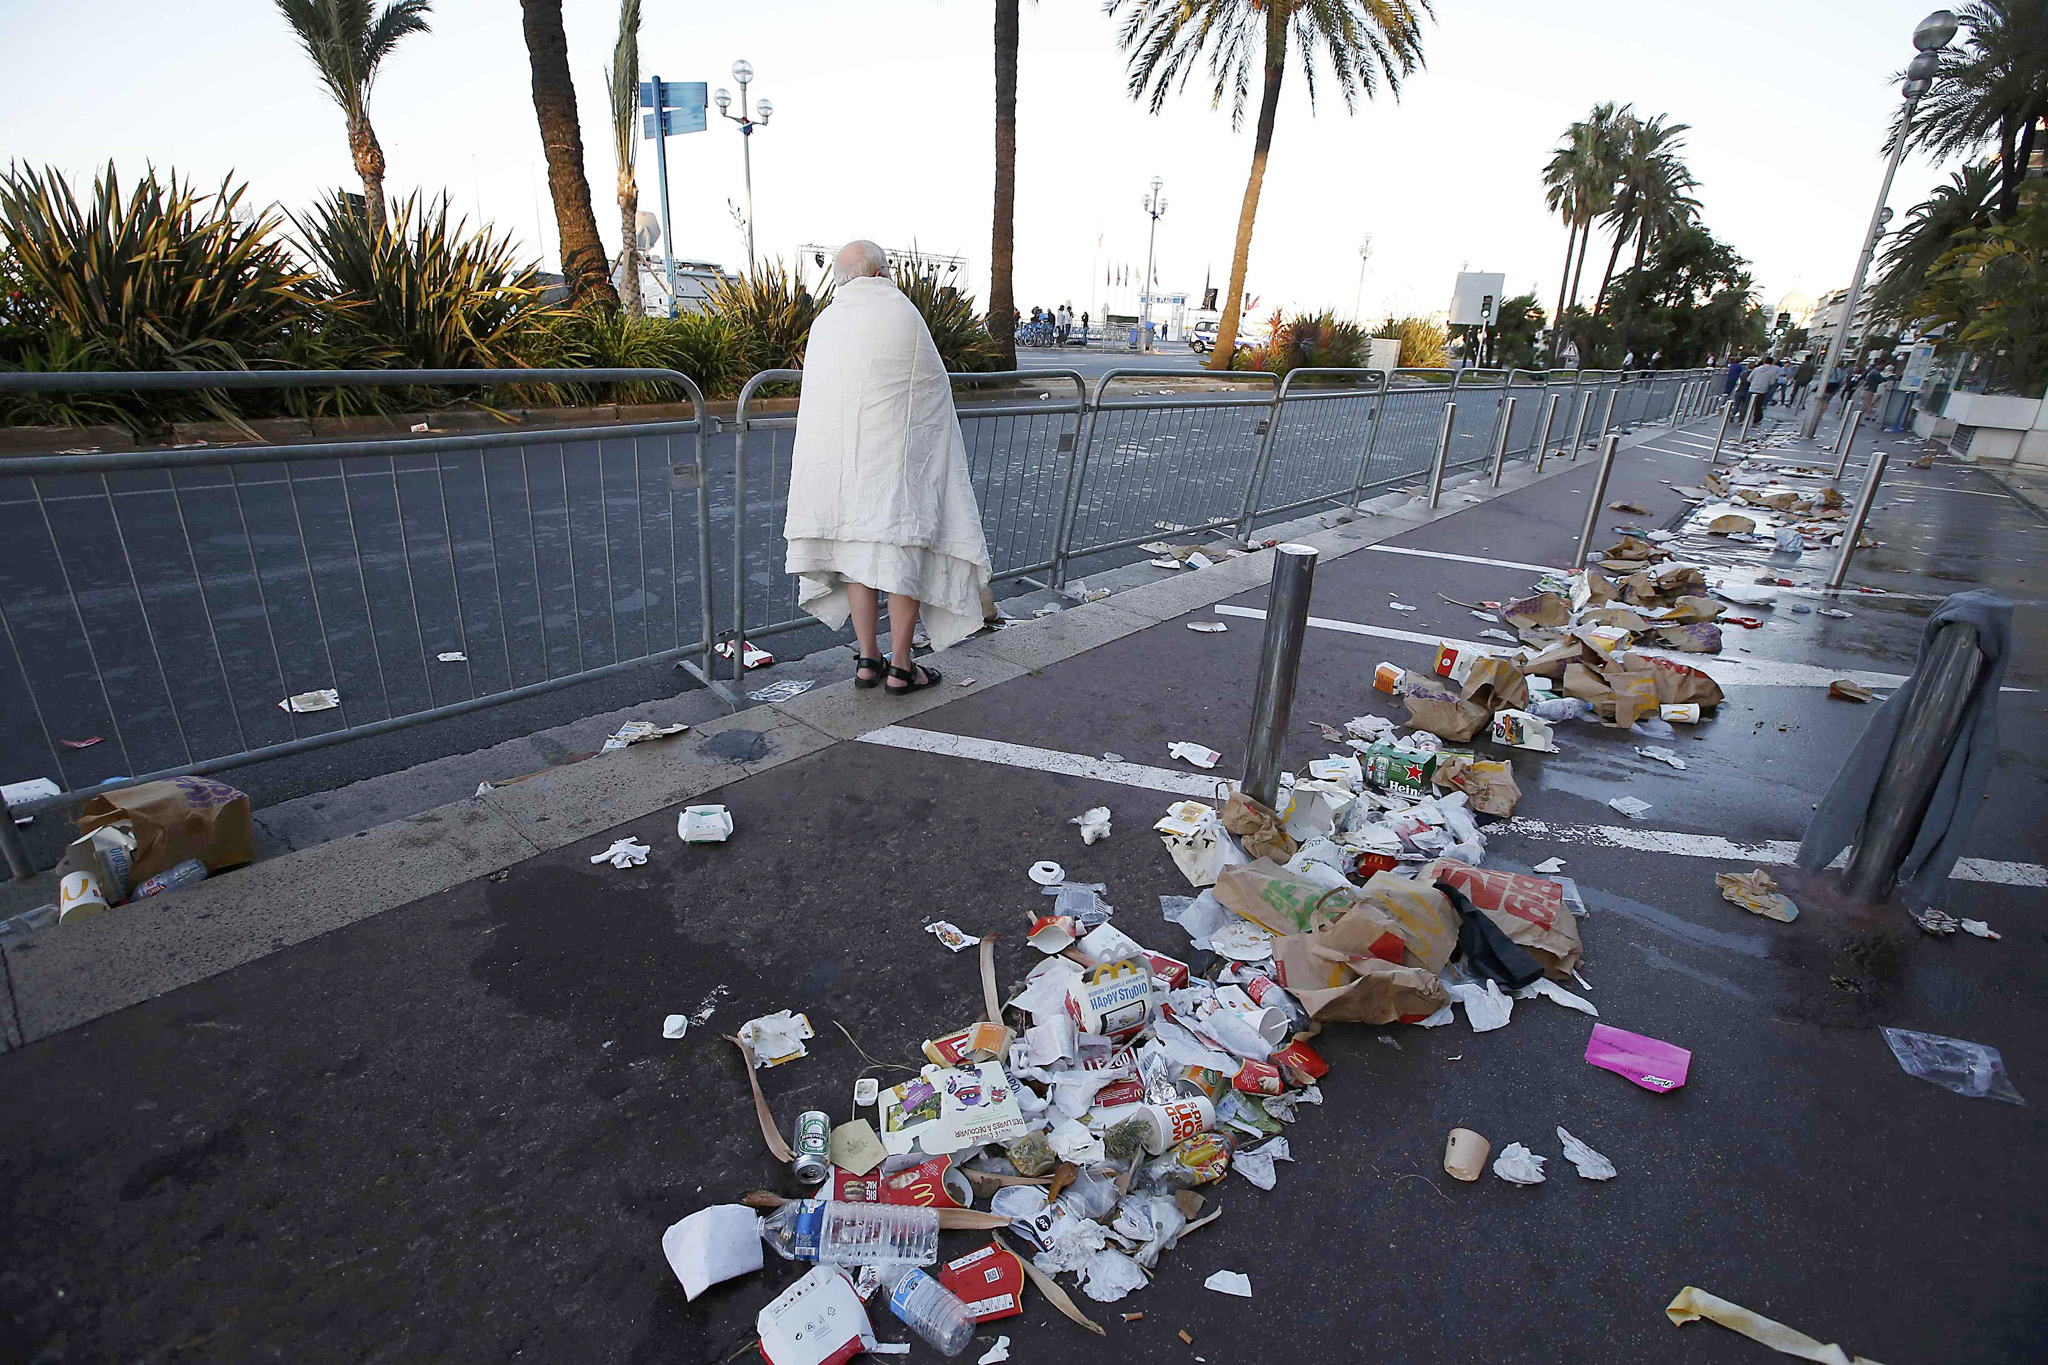 A man walks through debris scatterd on the street the day after a truck ran into a crowd at high speed killing scores celebrating the Bastille Day July 14 national holiday on the Promenade des Anglais in Nice, France, July 15, 2016.      REUTERS/Eric Gaillard